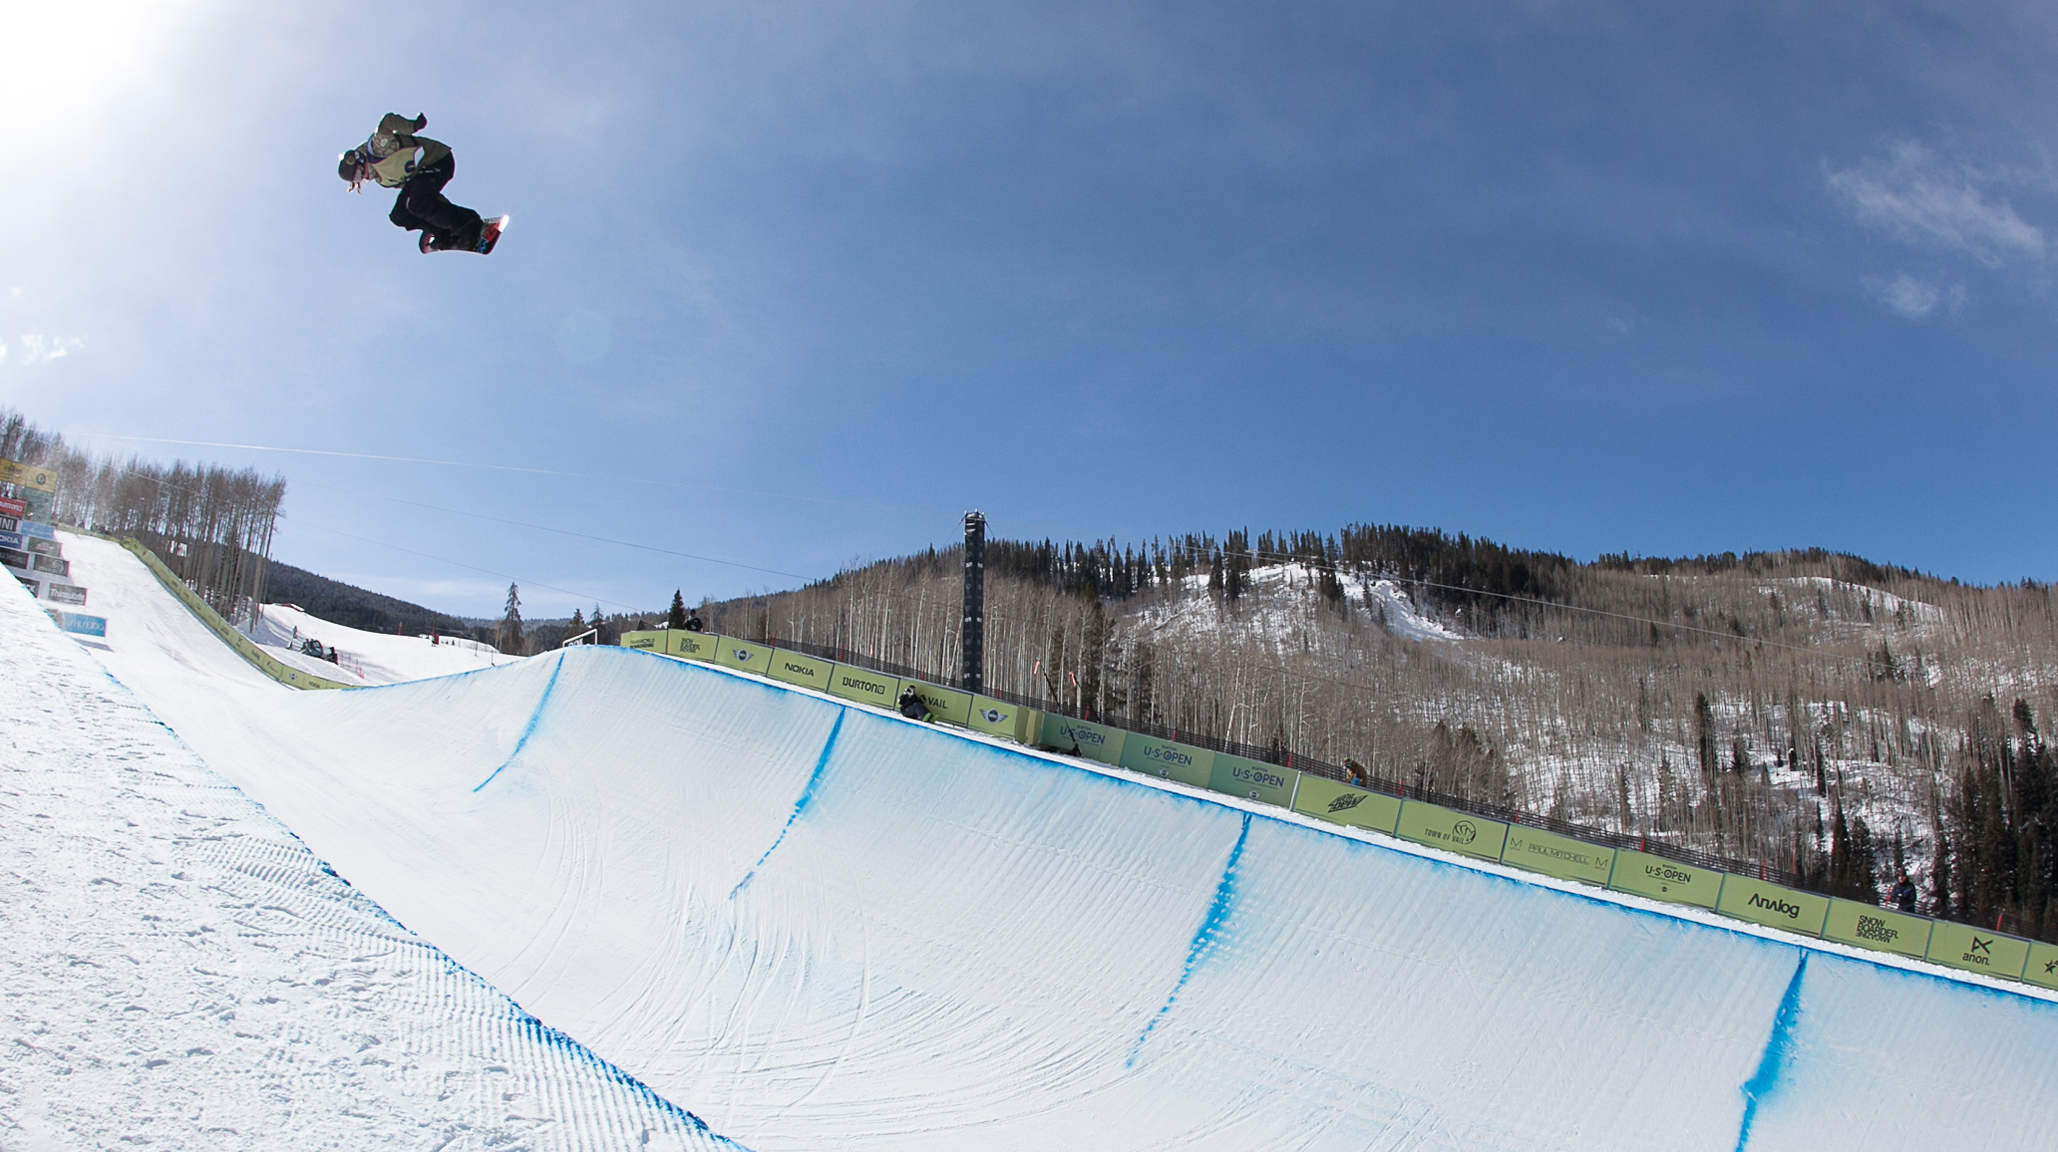 Kelly Clark qualified in the top position for Saturday's women's halfpipe finals with insanely boosted airs like this one.